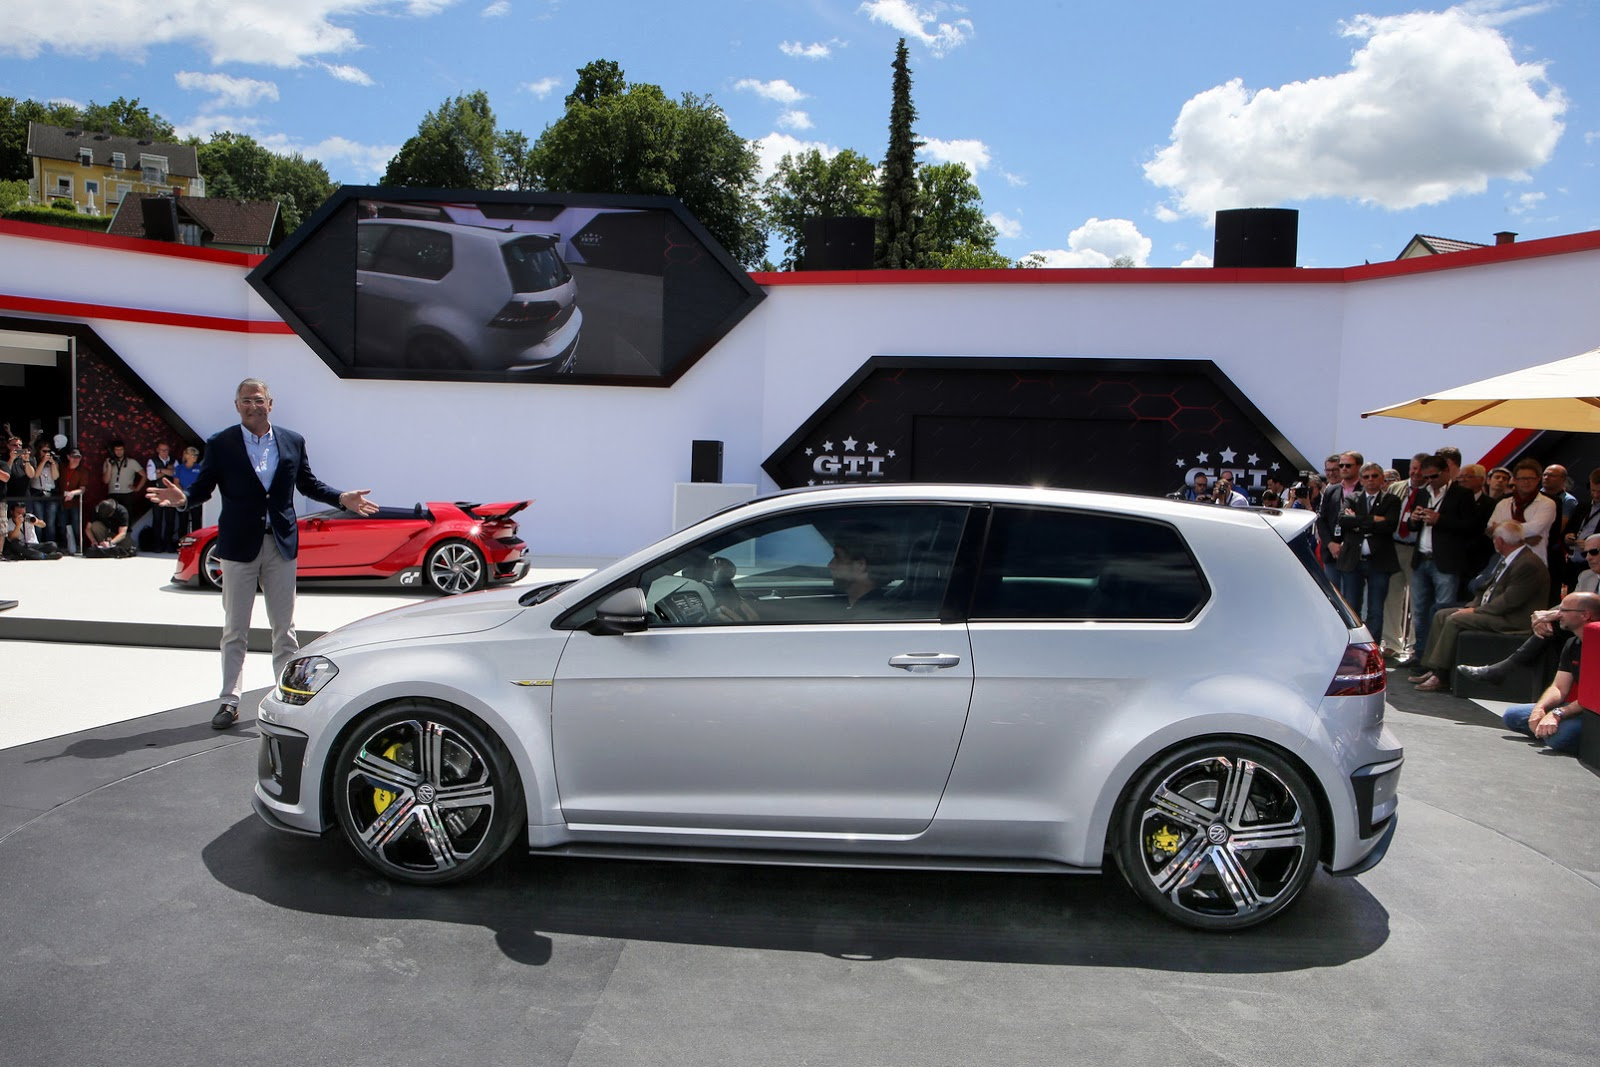 vw golf r 400 concept to pass through la show as it heads for production. Black Bedroom Furniture Sets. Home Design Ideas